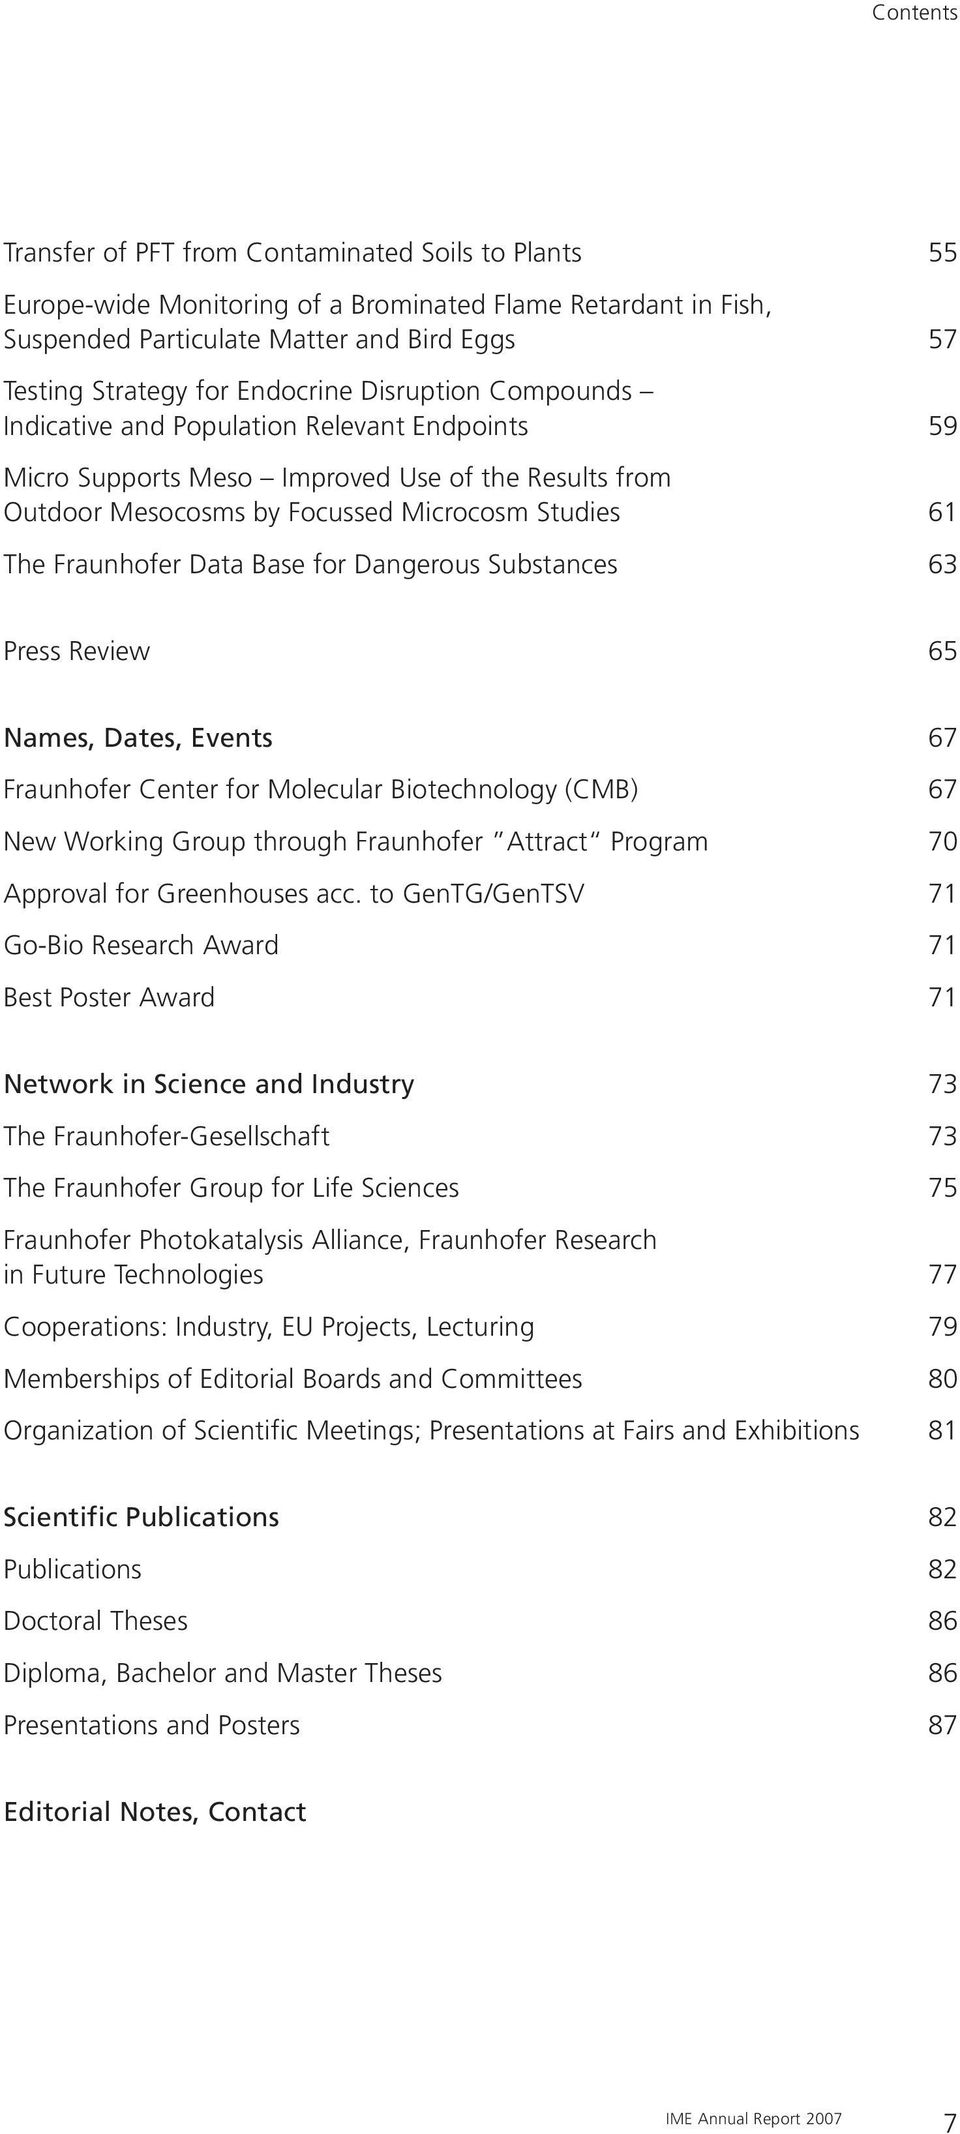 Data Base for Dangerous Substances 63 Press Review 65 Names, Dates, Events 67 Fraunhofer Center for Molecular Biotechnology (CMB) 67 New Working Group through Fraunhofer Attract Program 70 Approval